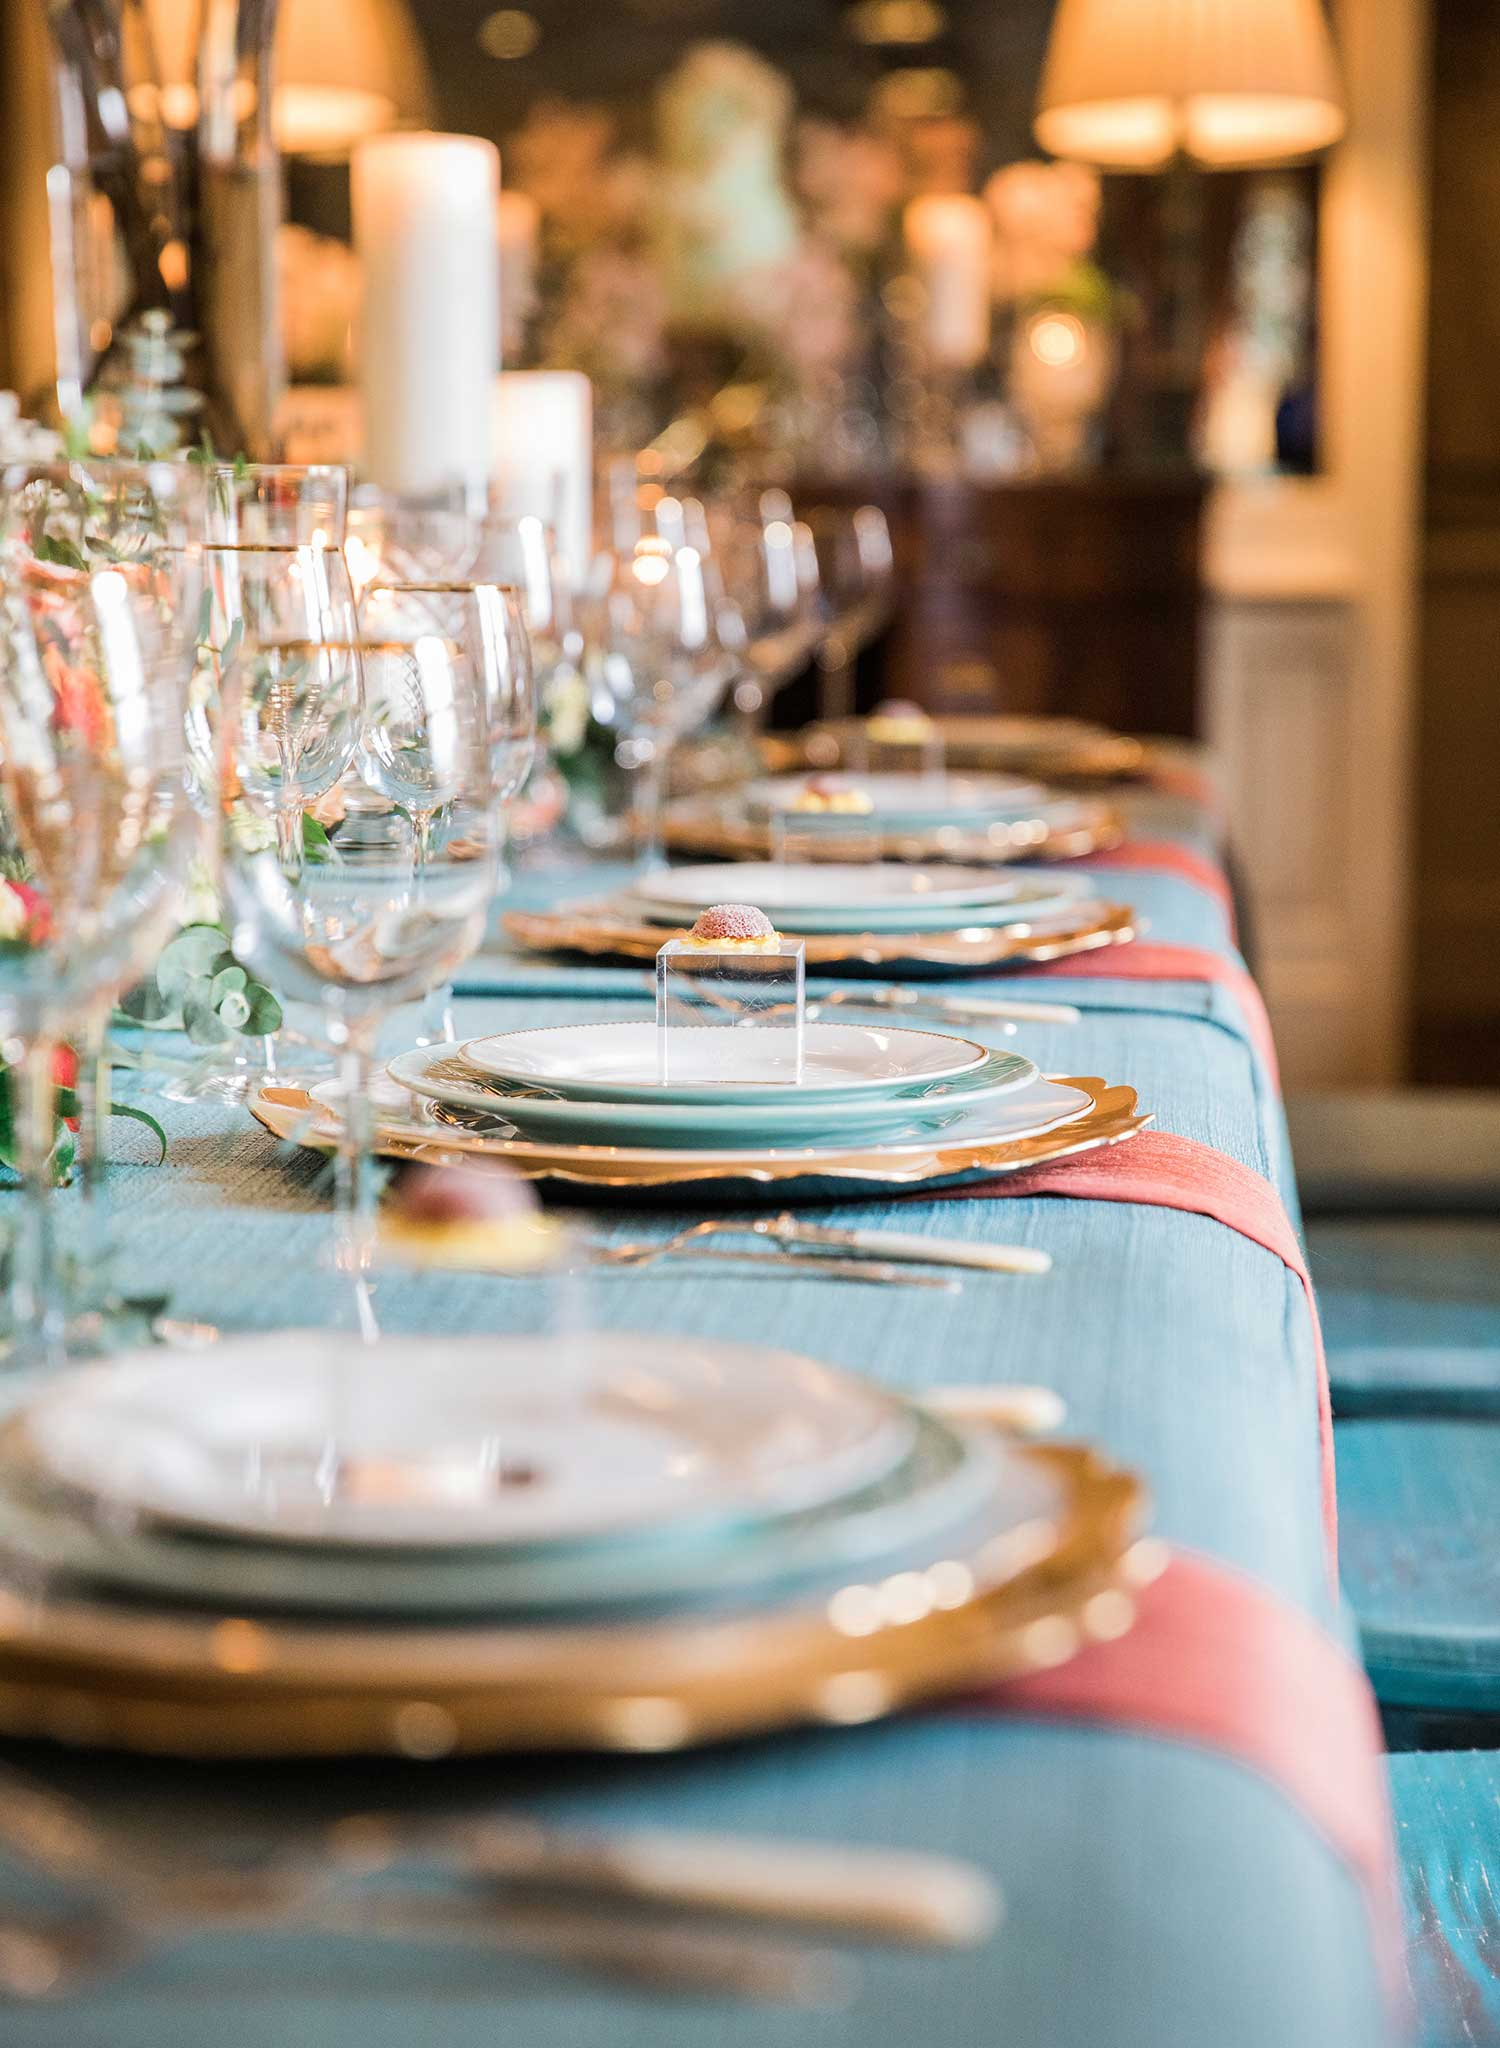 A table set for a small wedding with a blue table cloth.